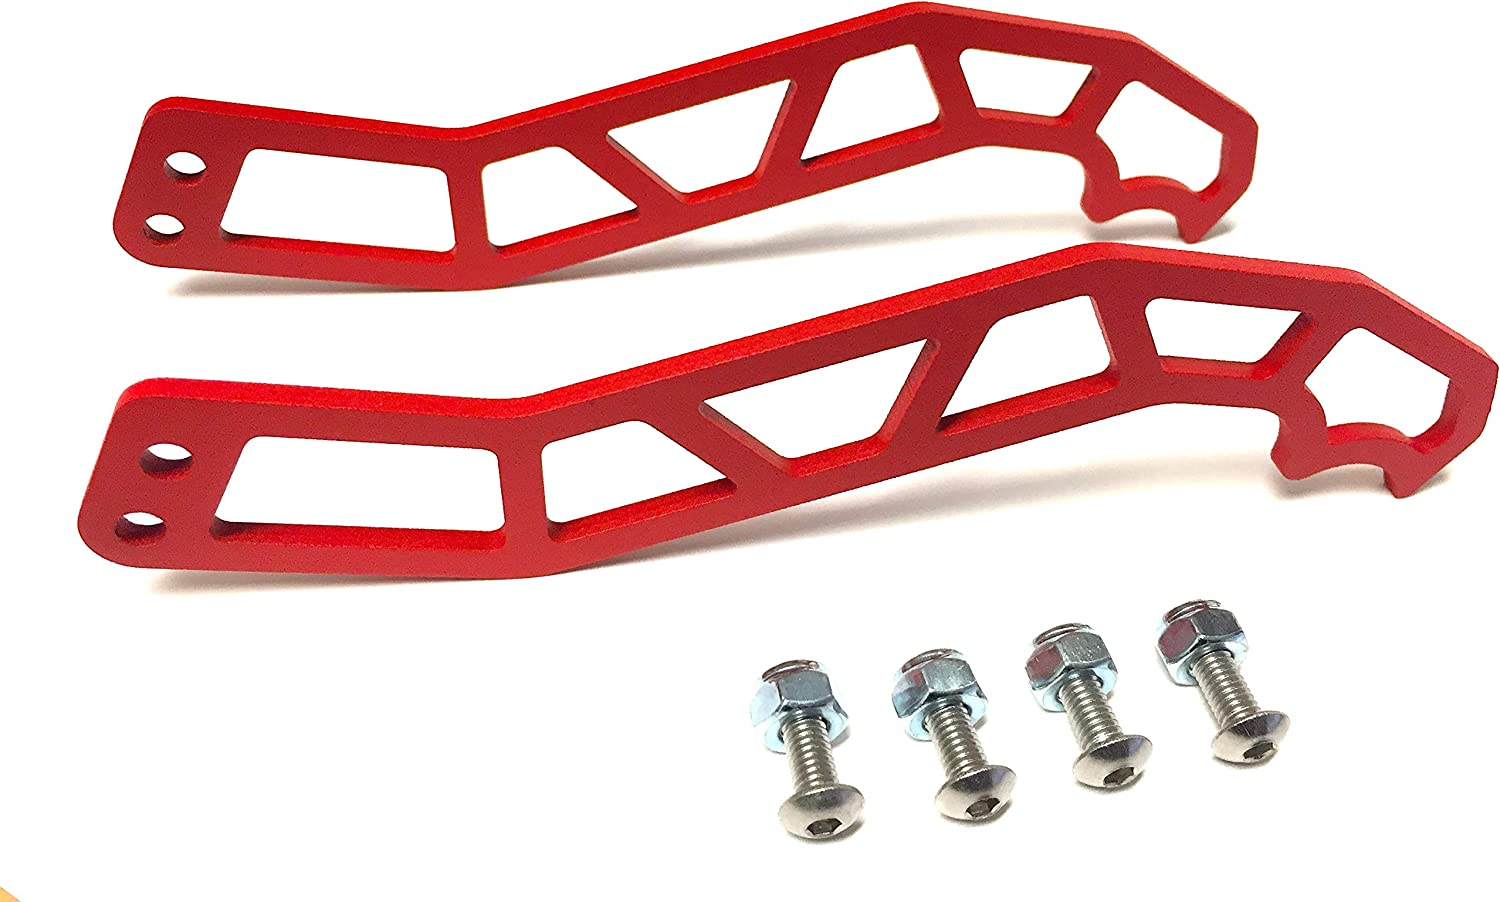 Lesiyou Door Handle Latches Sets for Can-Am Maverick X3 X DS RS Turbo R Max 2 /& 4 Door 2017-2020,Red